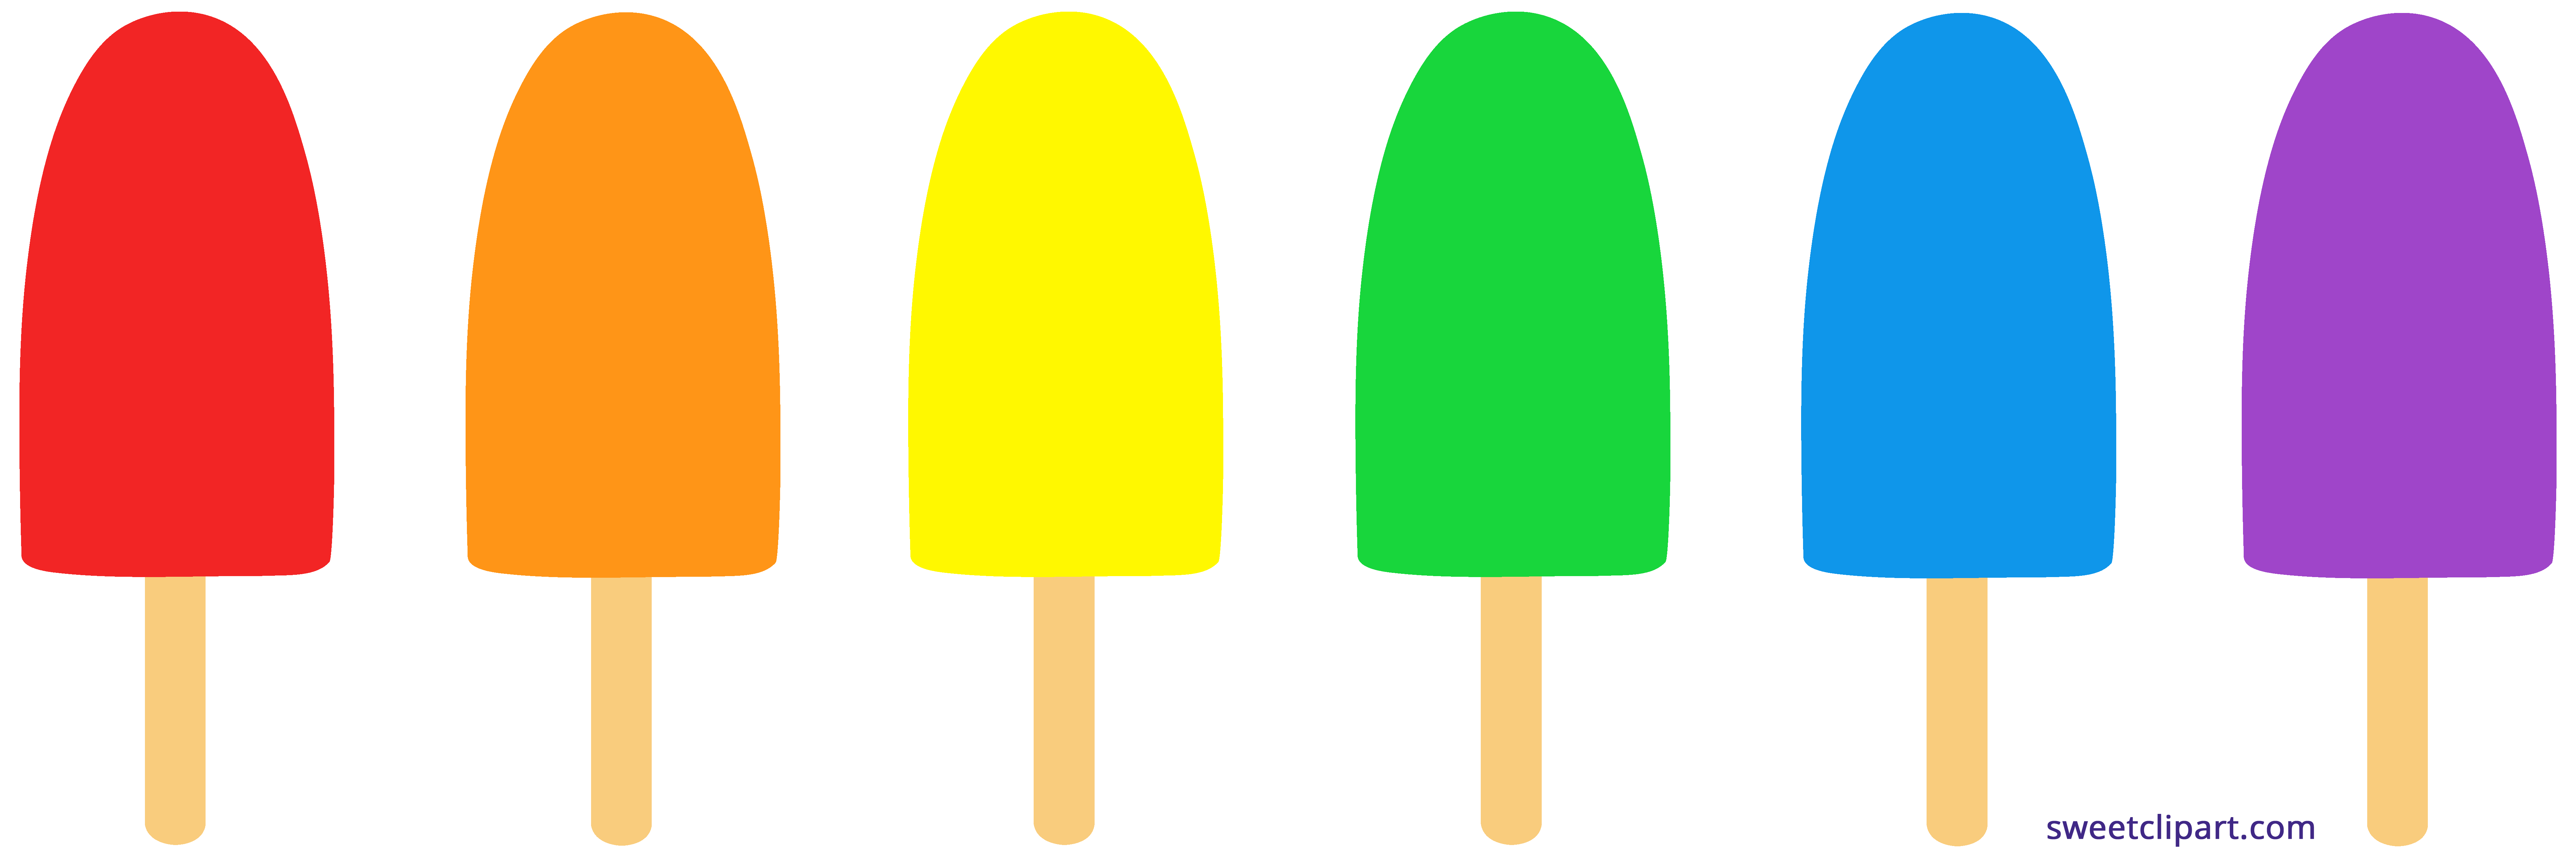 Clipart food simple. Rainbow popsicles sweet clip